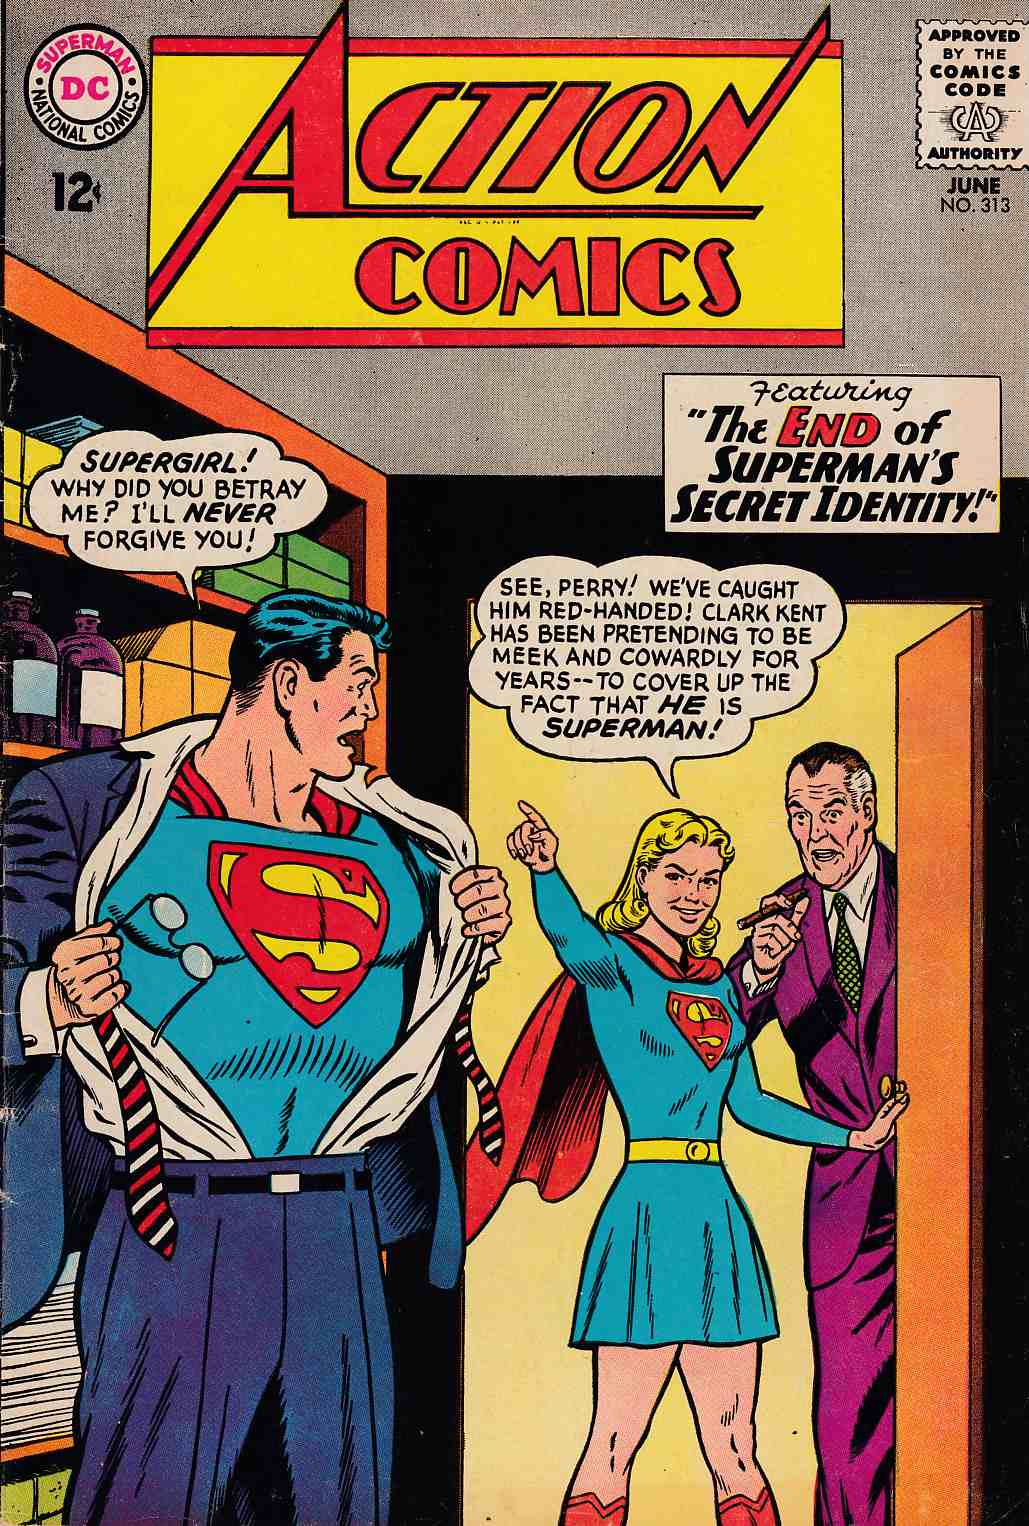 Action Comics #313 Very Good (4.0) [DC Comic] THUMBNAIL